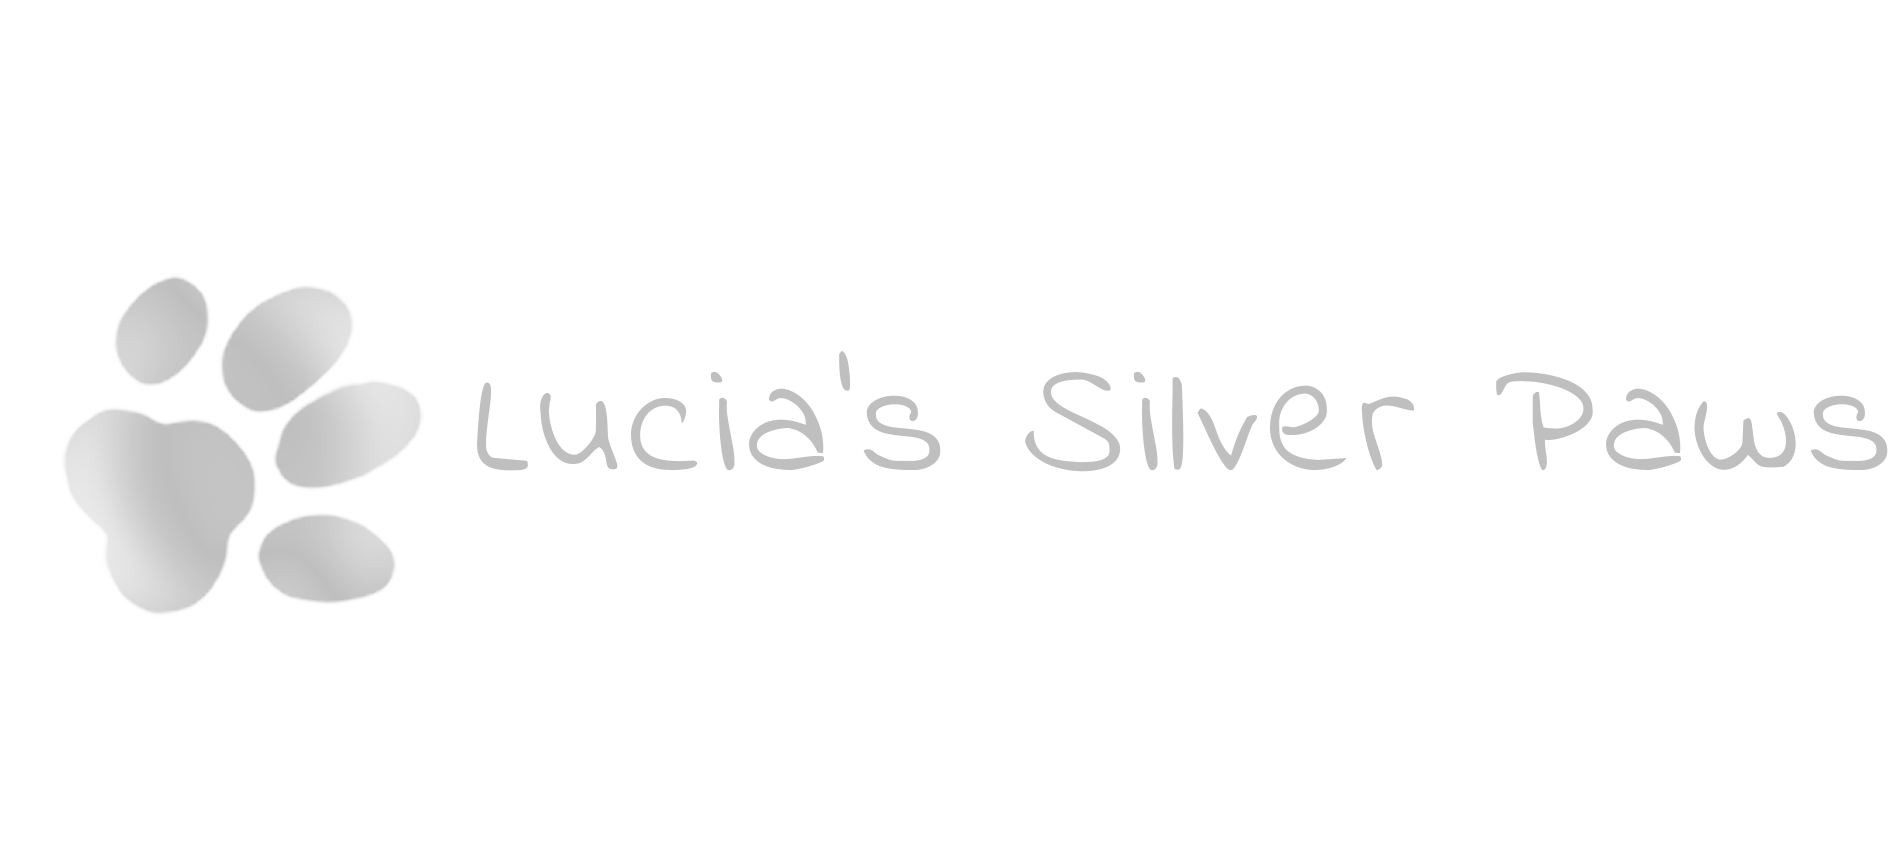 Lucia's Silver Paws